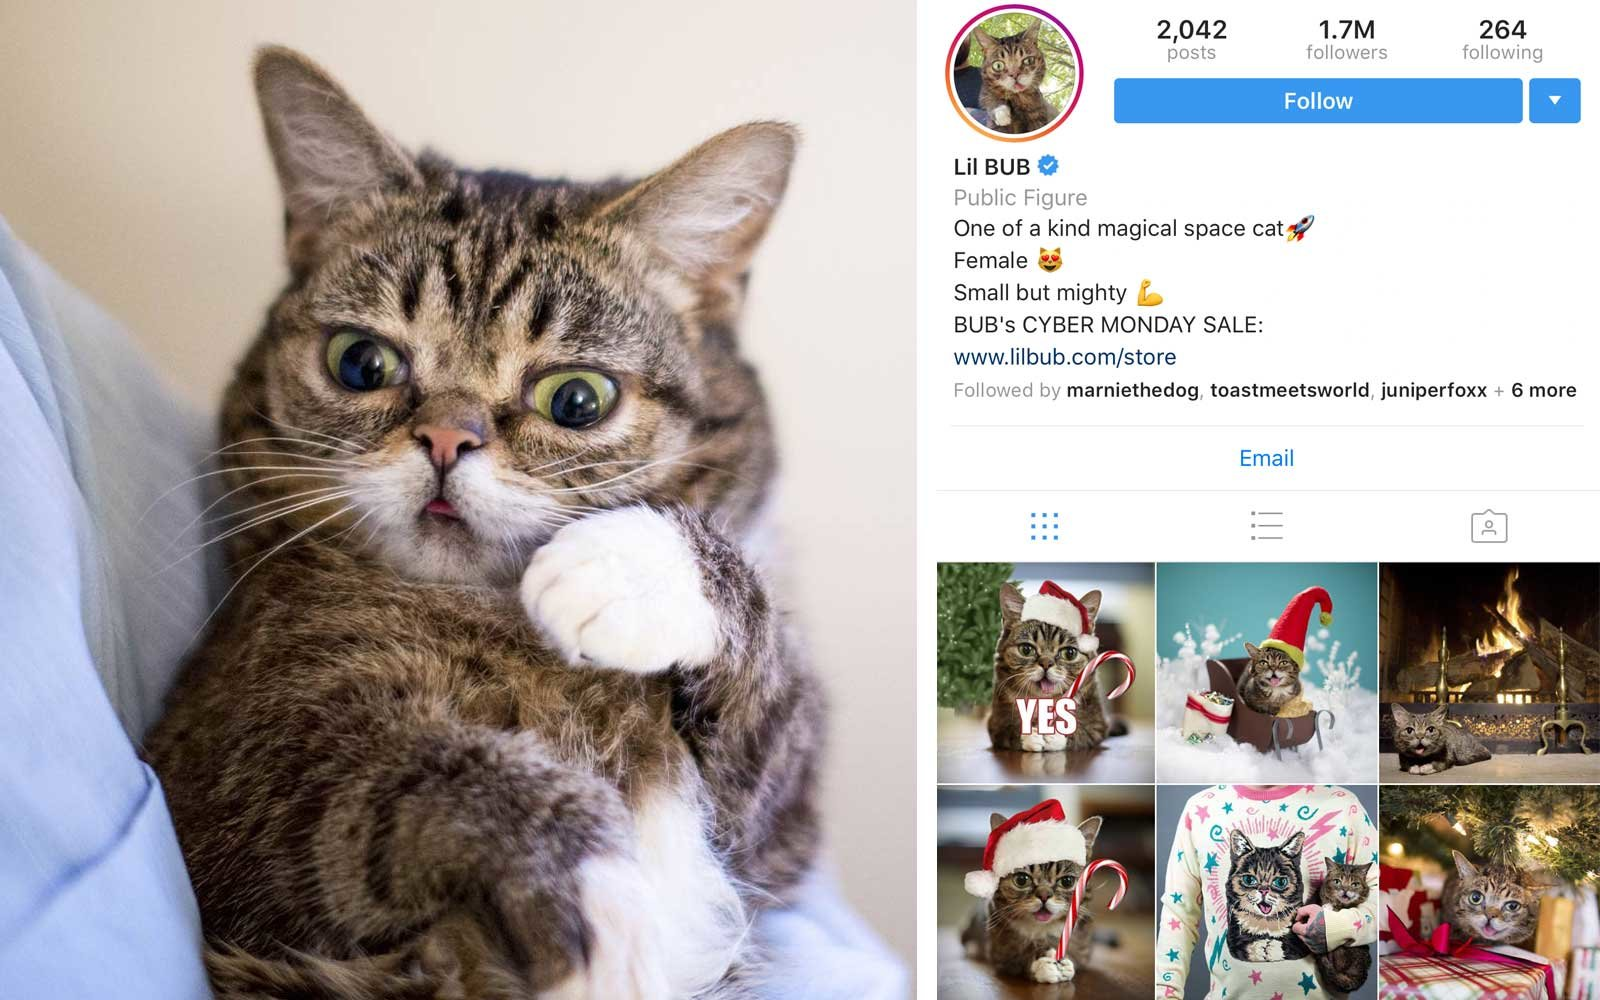 Lil Bub (@iamlilbub) - Cat, US - 1.6M+ Followers